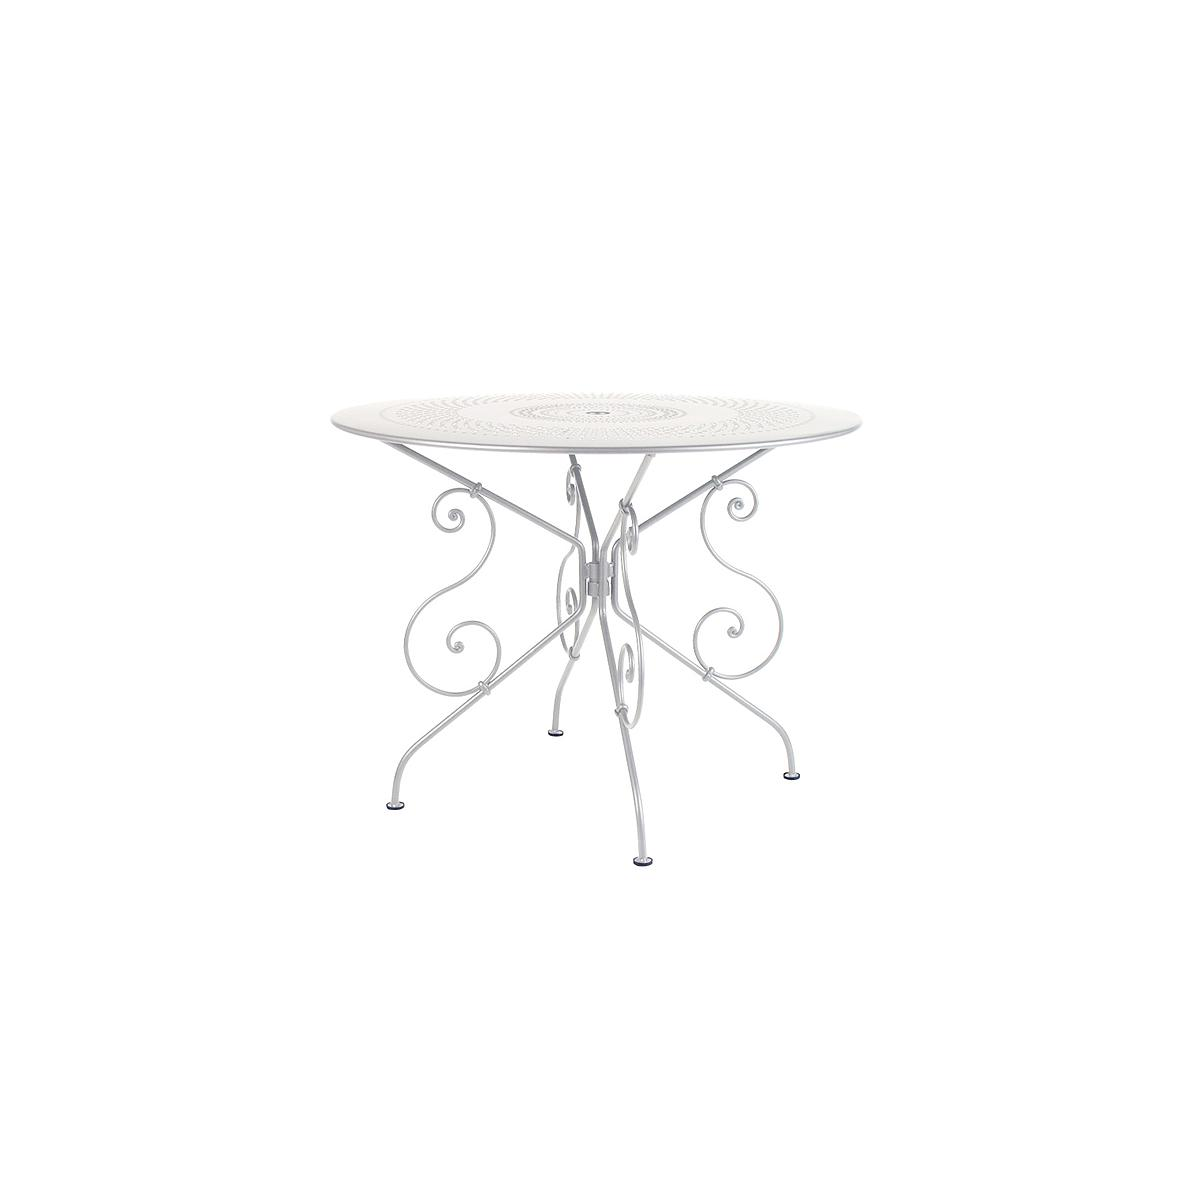 1900 by Fermob Table ronde 96 cm blanc coton